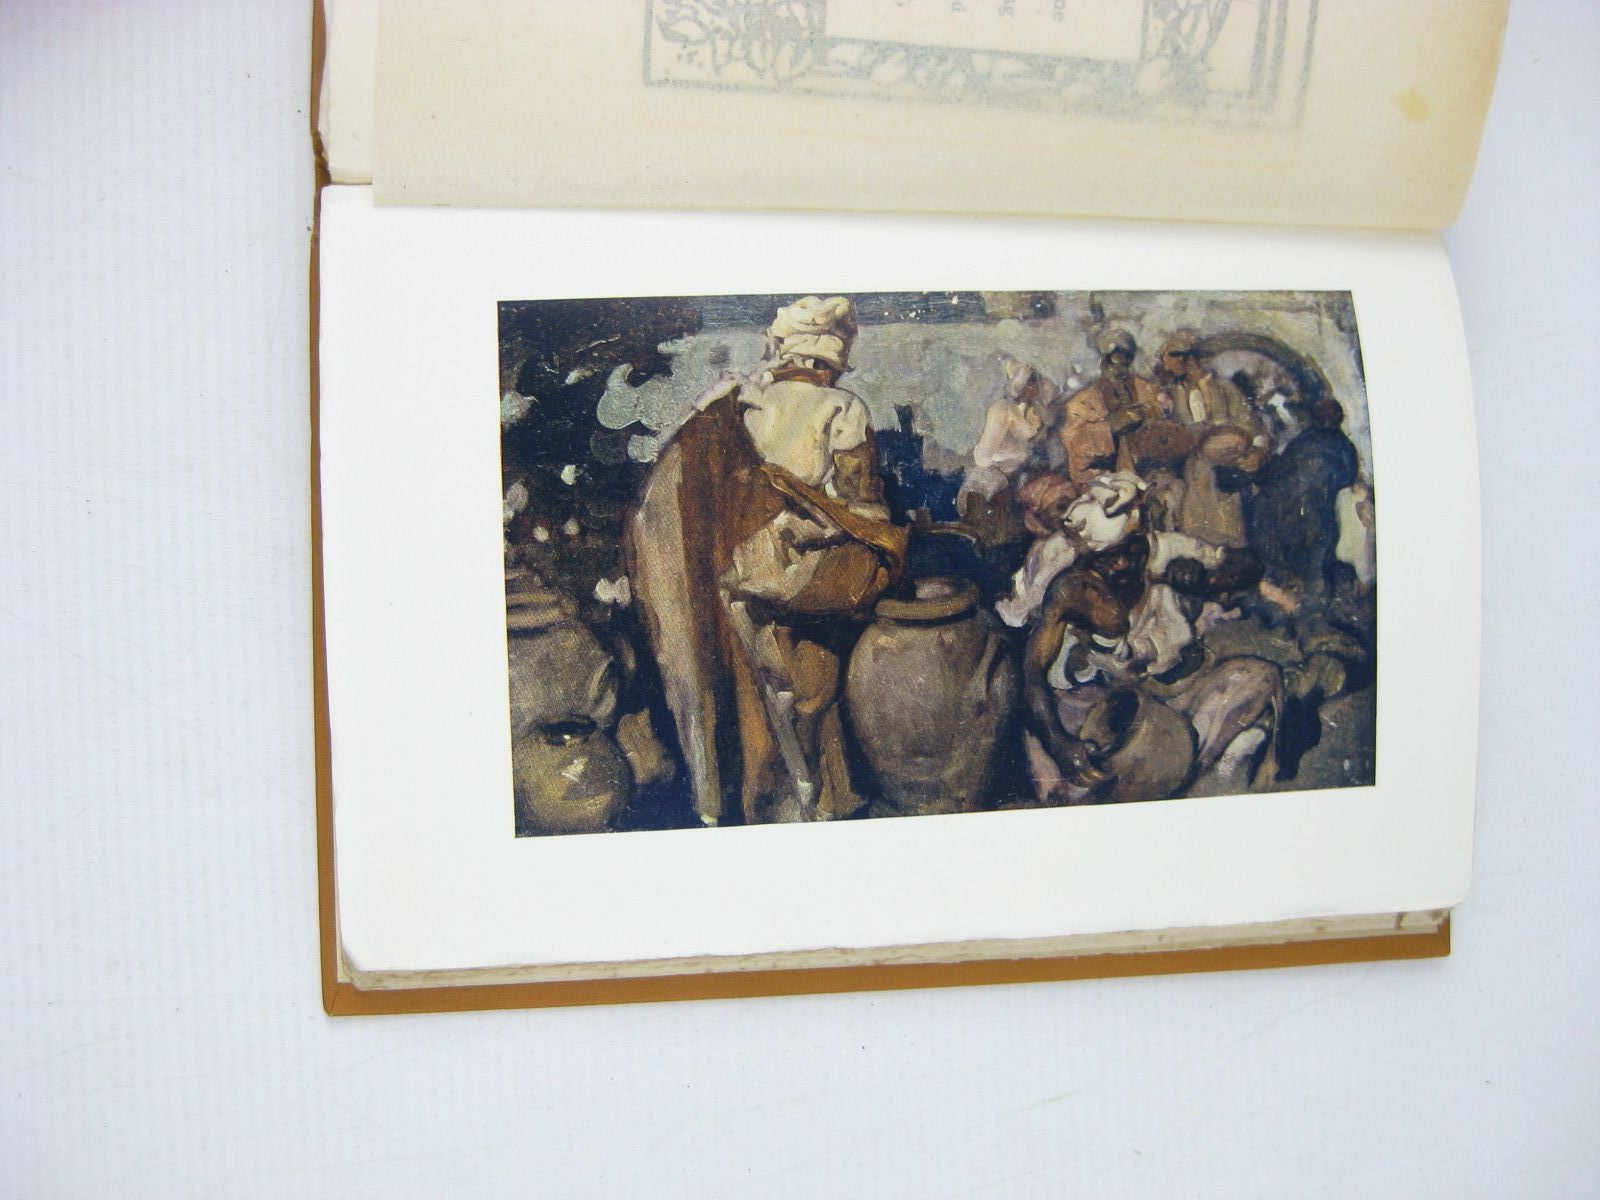 Photo of RUBAIYAT OF OMAR KHAYYAM written by Fitzgerald, Edward Jacobs, Joseph illustrated by Brangwyn, Frank published by Sampson Low, Marston & Co. Ltd. (STOCK CODE: 1314099)  for sale by Stella & Rose's Books